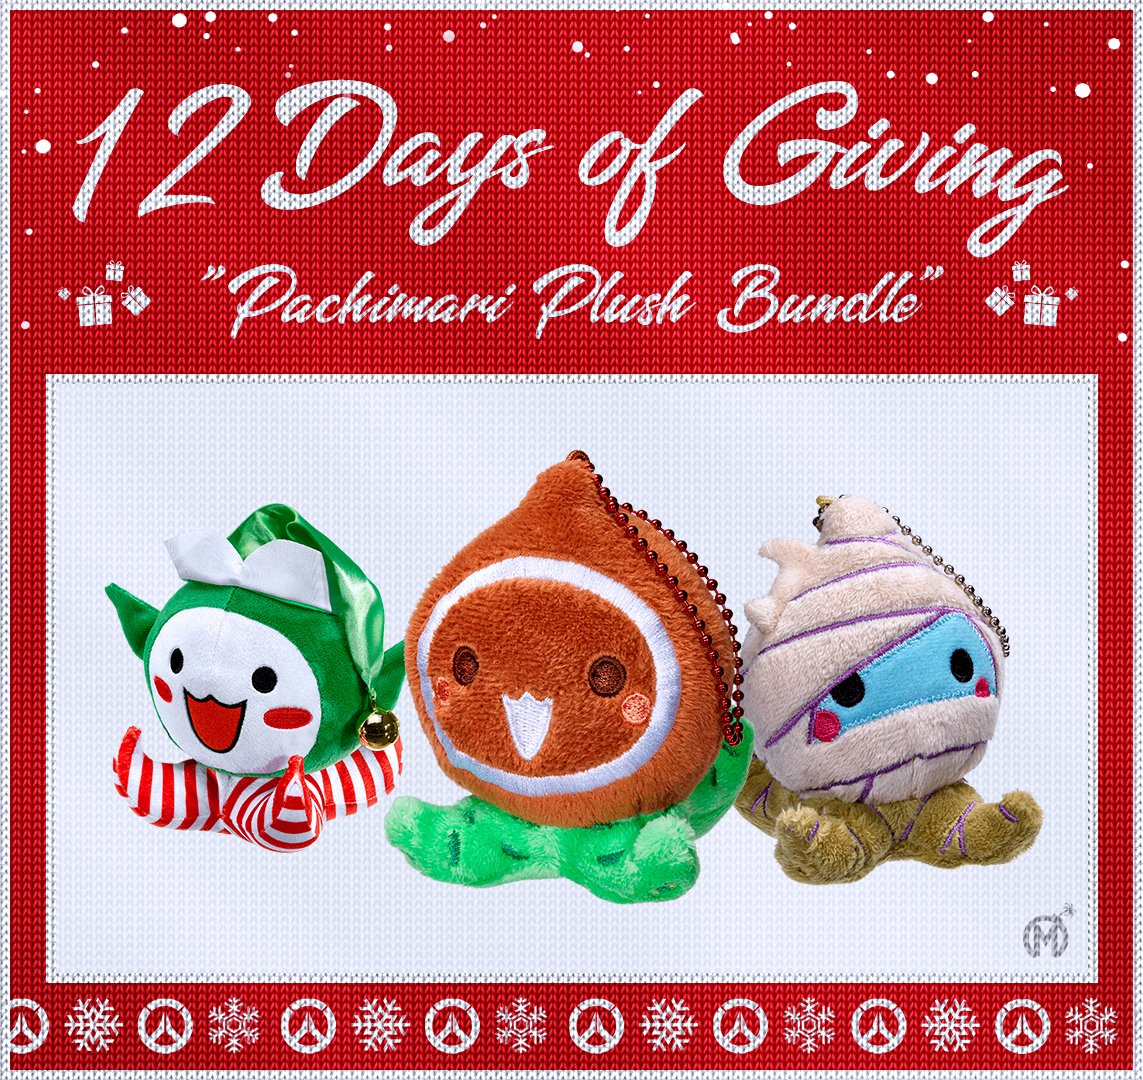 12 Days of Giving! No such thing as too many Pachimaris.  Day 9: The Pachimari plush bundle.  🎁 Retweet  🎁 Follow 🎁 Reply with #Pachimas  Daily winners will be notified via DM at 11:59PM PST. 🎅